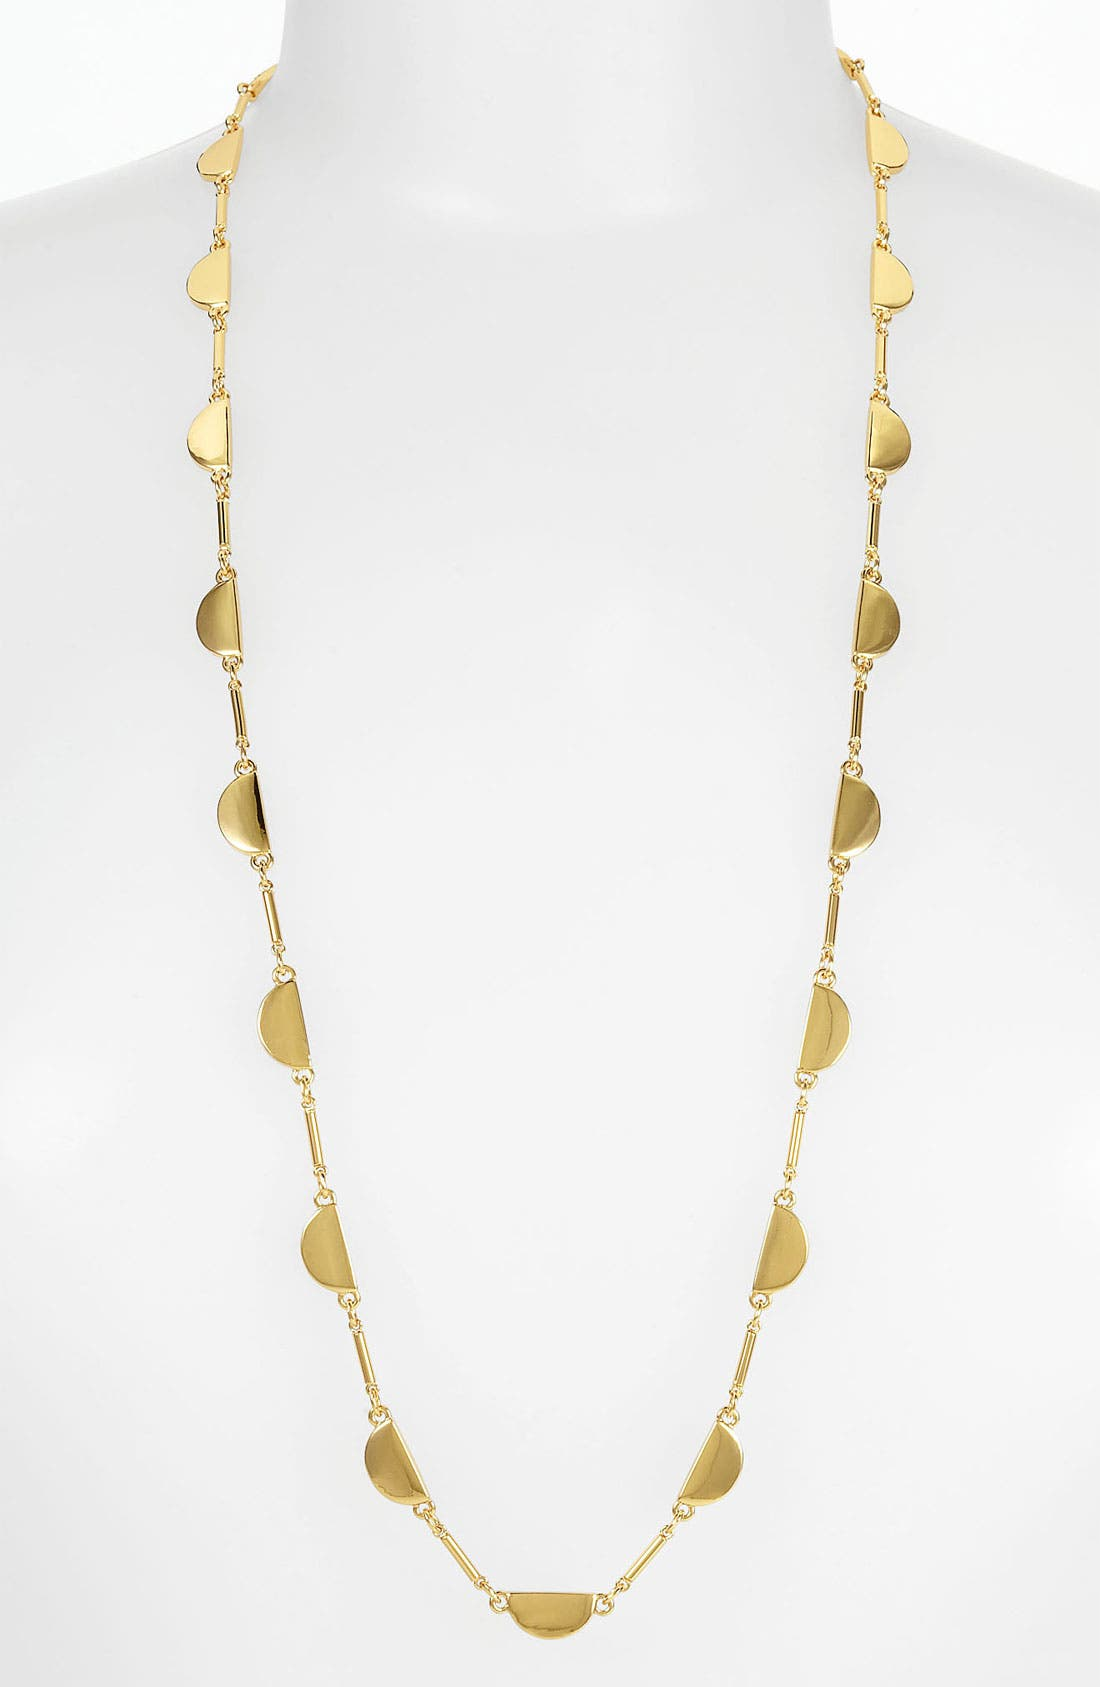 Main Image - kate spade new york 'scallop' station necklace